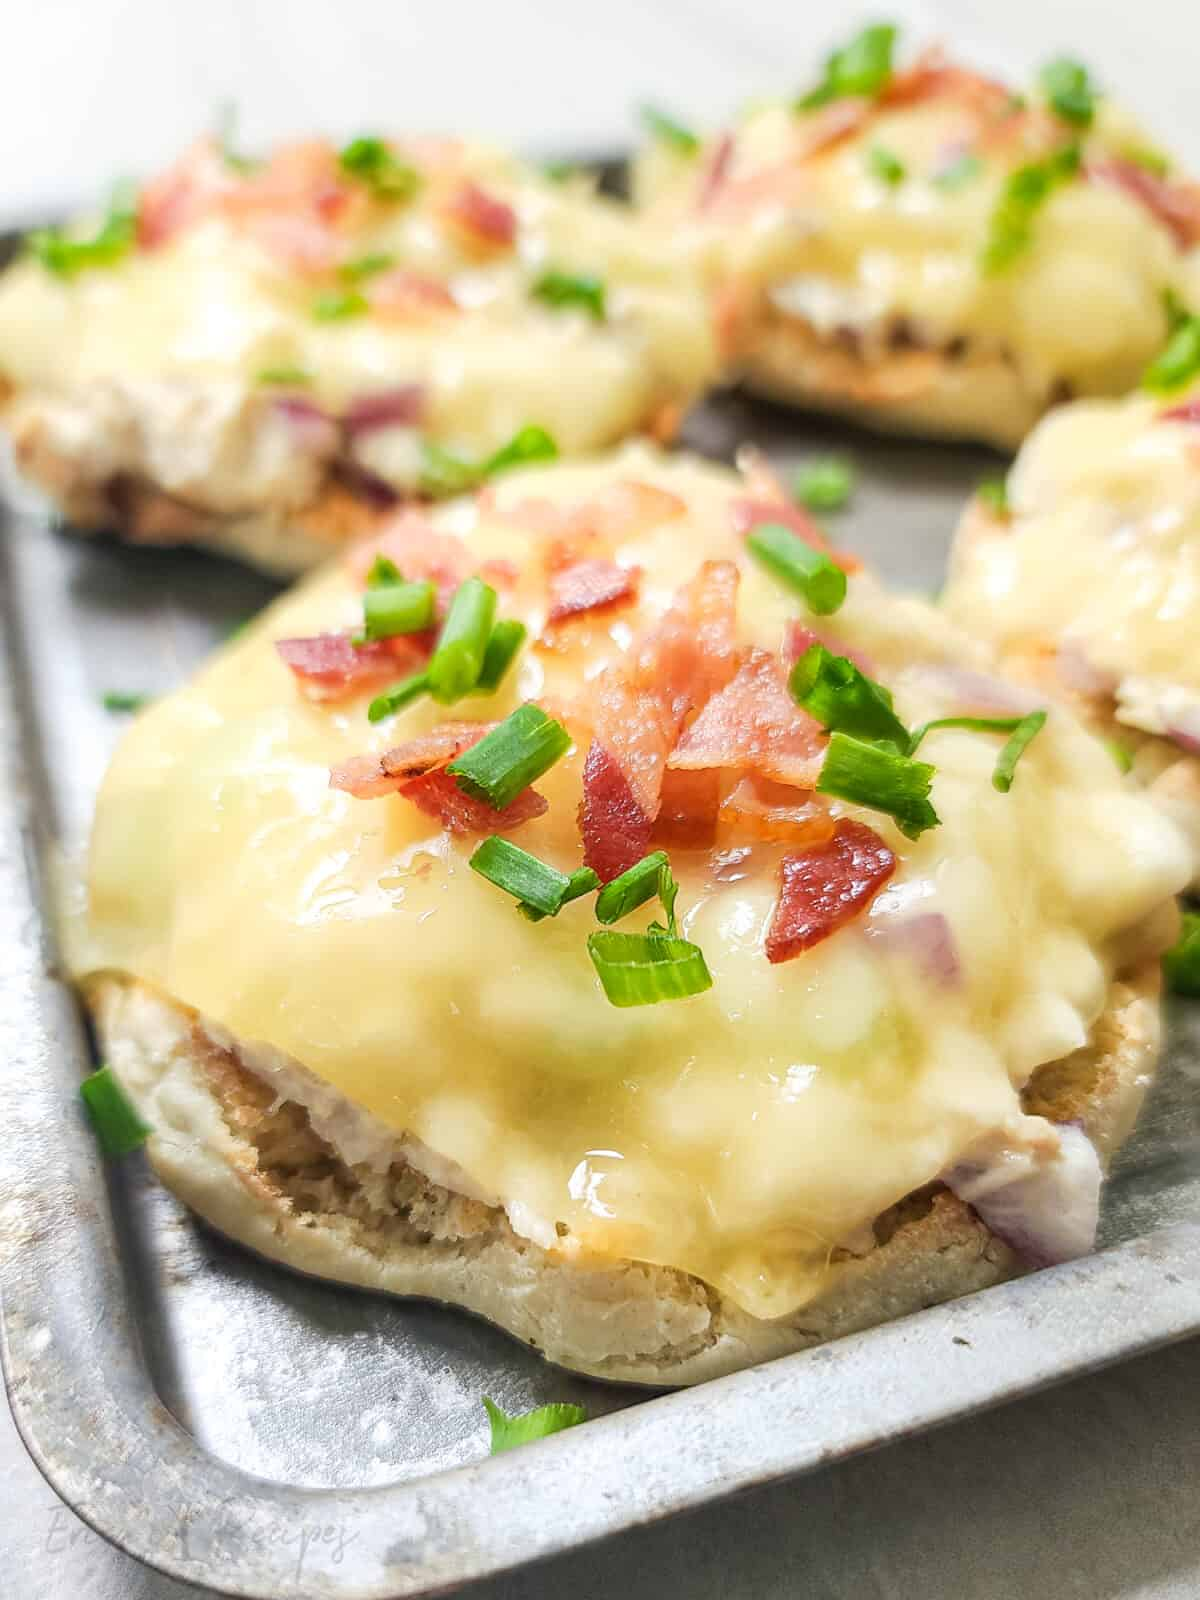 close, side view of open faced tuna melt on bake sheet topped with bacon and chives